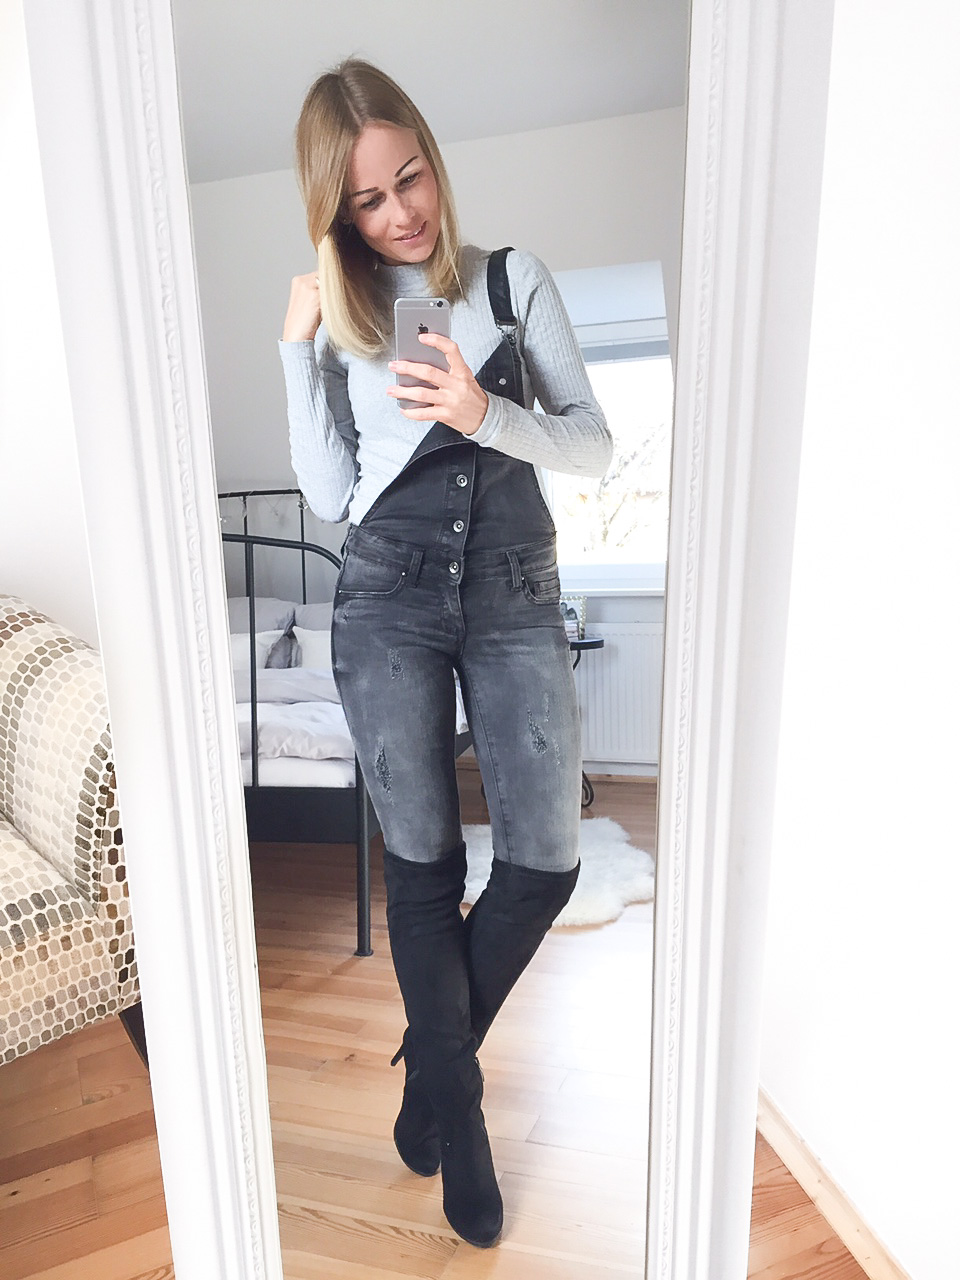 stylingliebe-fashionblog-muenchen-munich-blogger-fashionblogger-bloggerdeutschland-lifestyleblog-modeblog-muenchen-germanblogger-ootd-outfit-inspiration-1